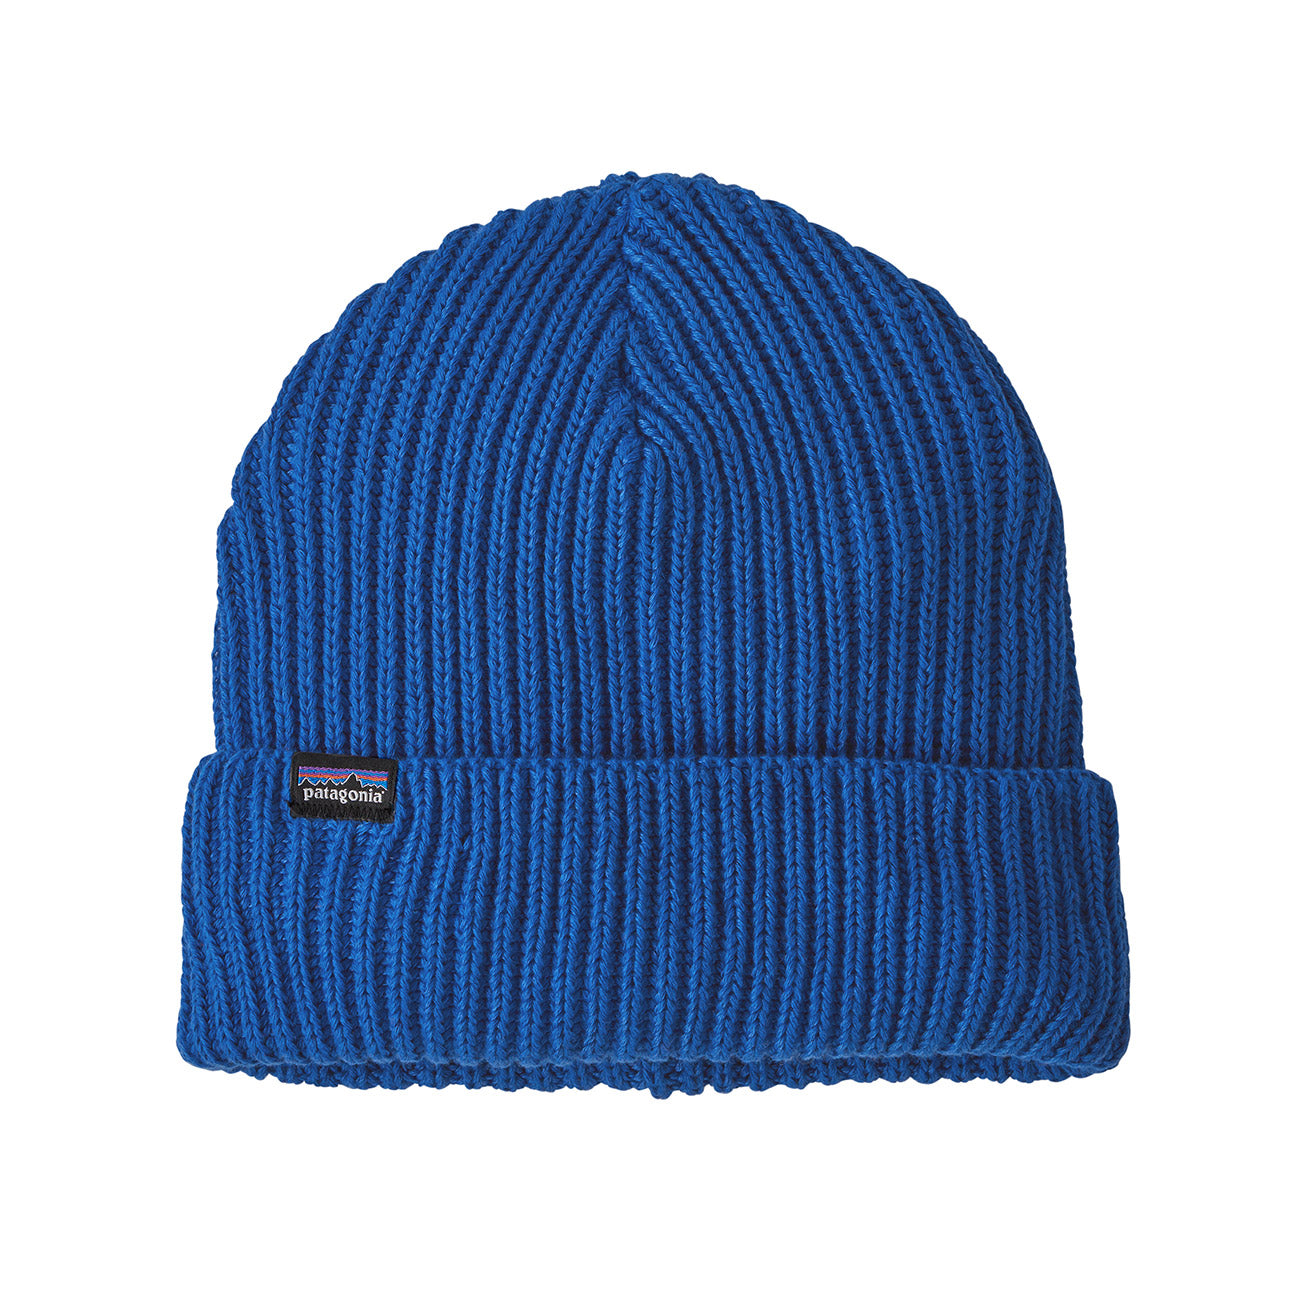 fisherman's rolled beanie in alpine blue